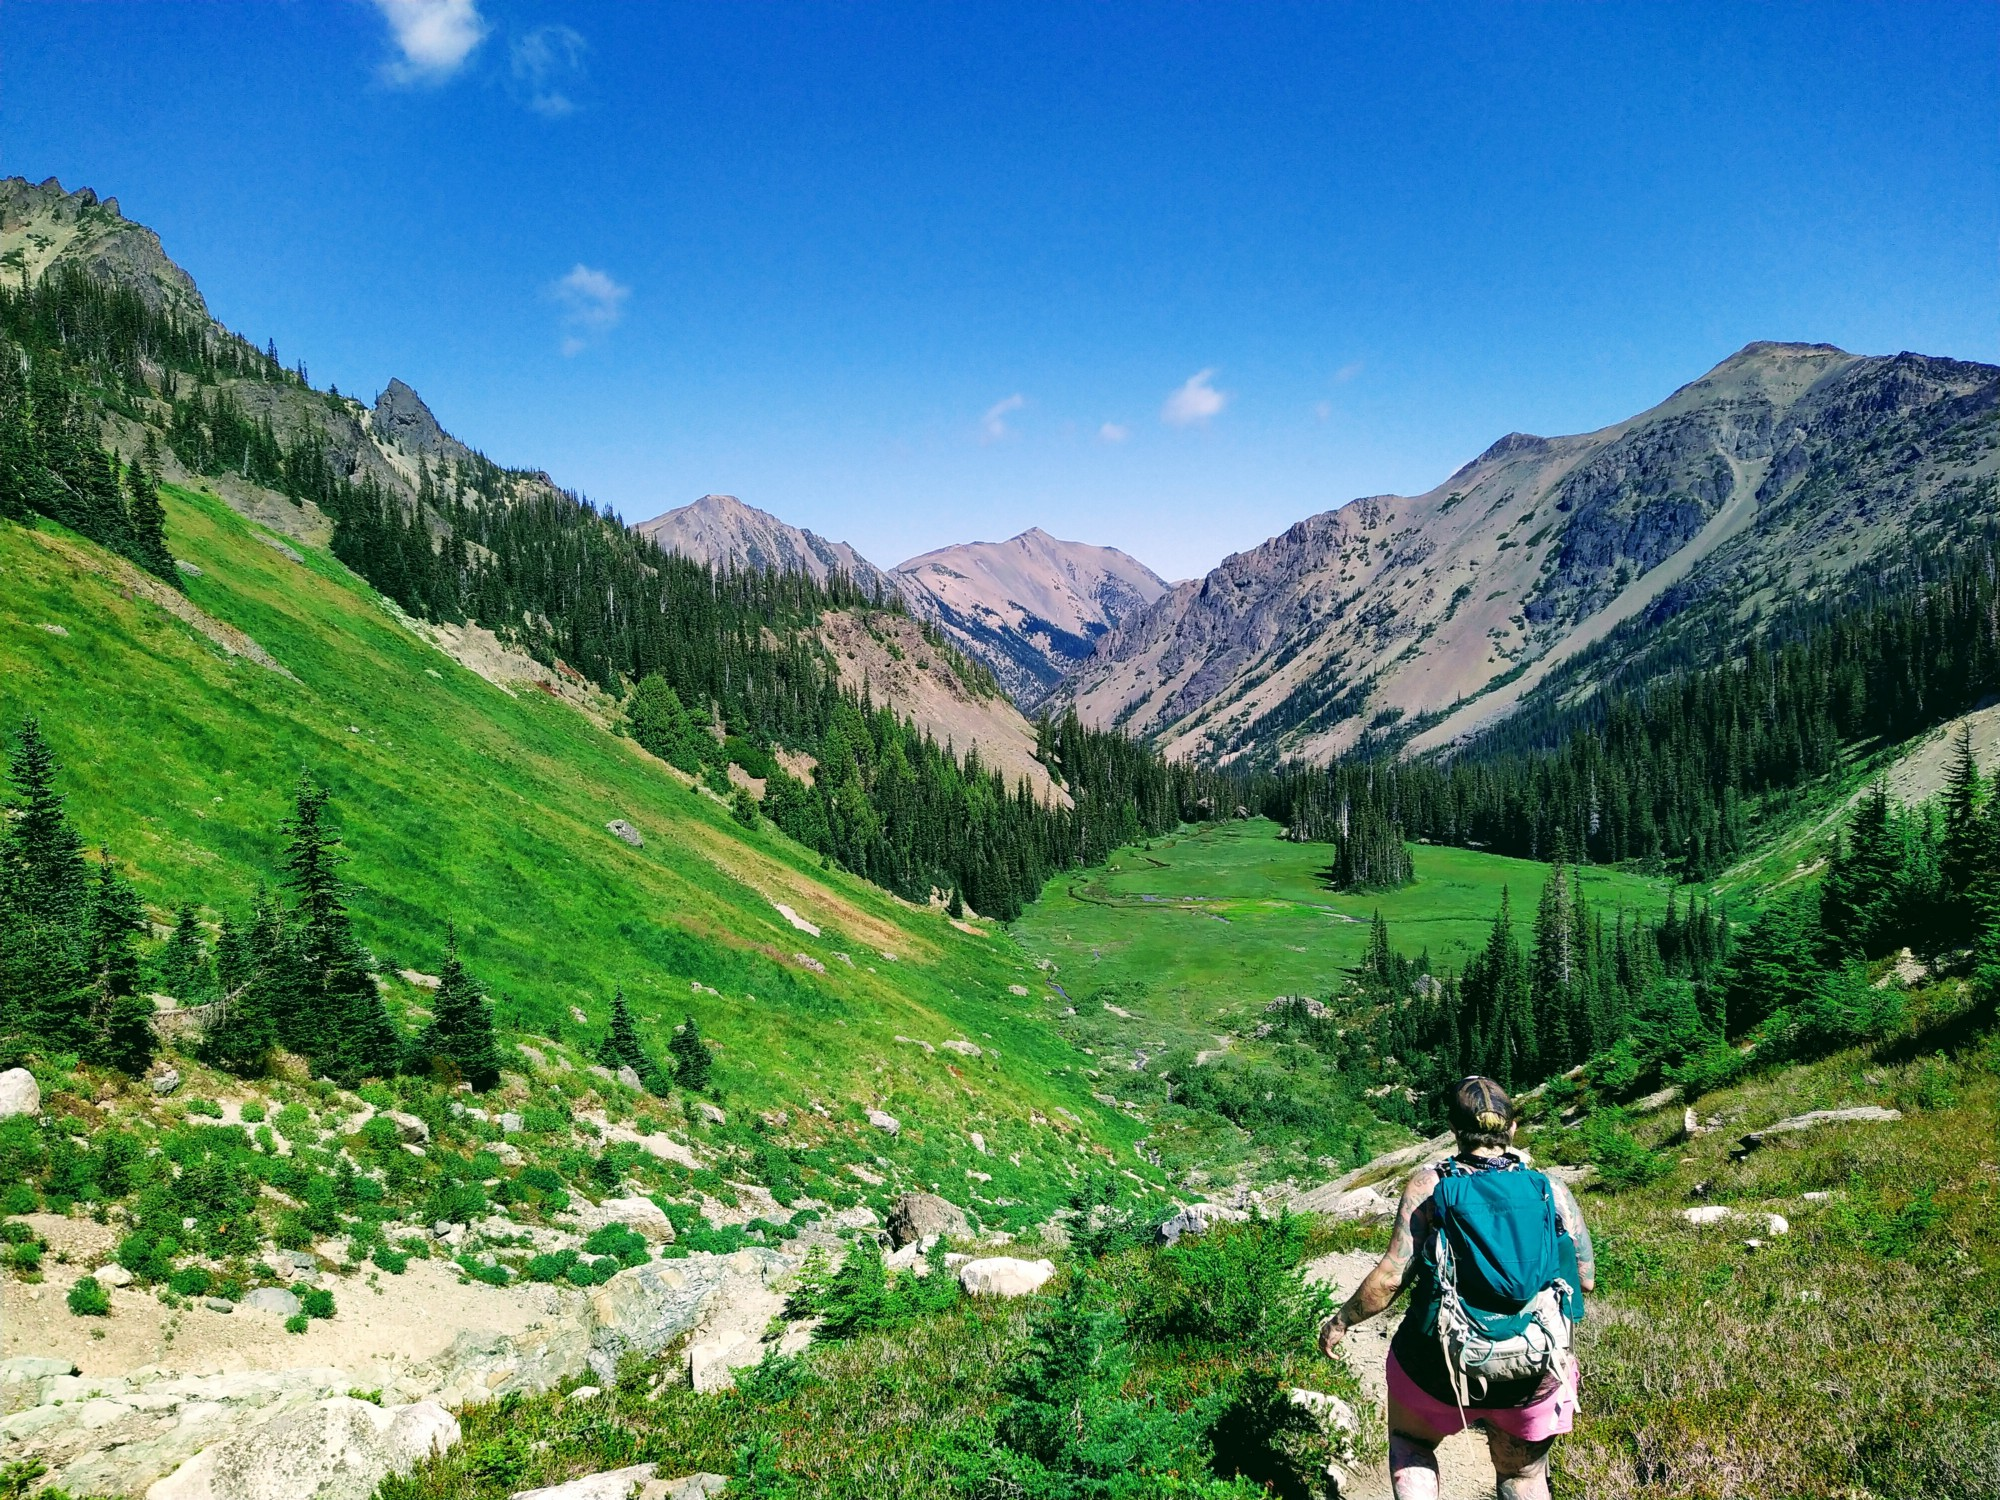 A hiker negotiates a trail in the Royal Basin of the Olympic Mountains. (Naomi Gross)